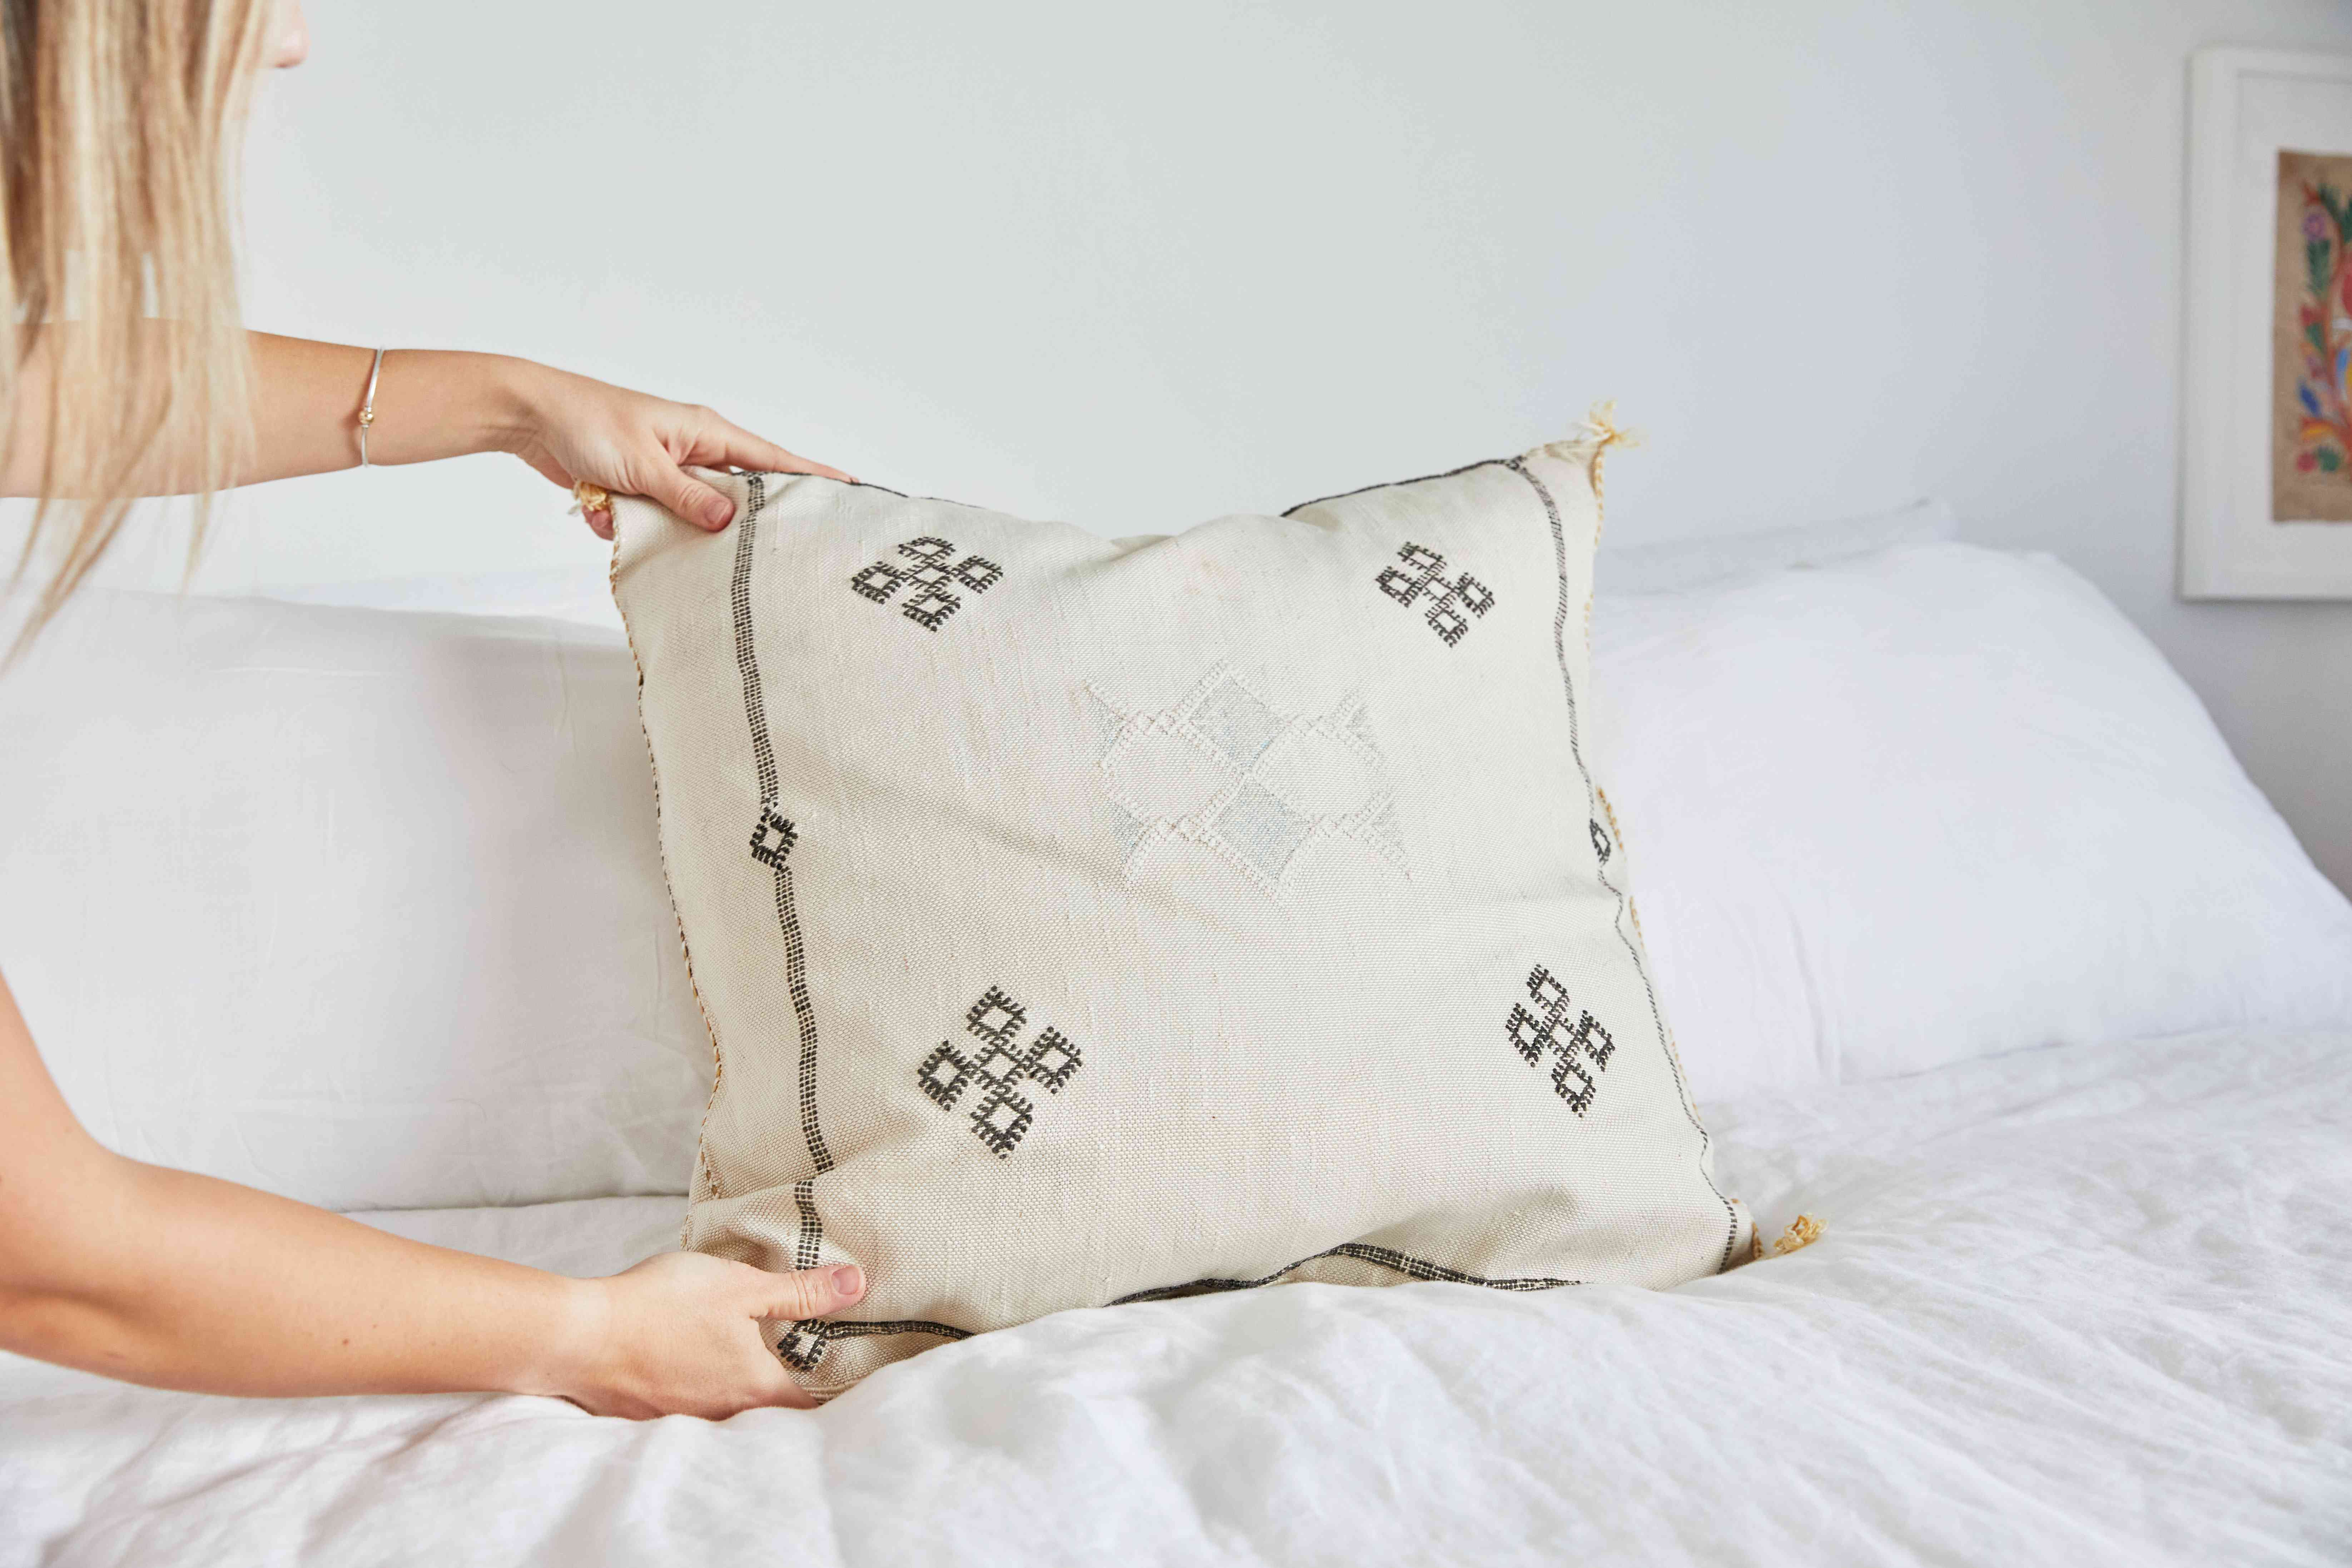 person placing a pillow on a made bed